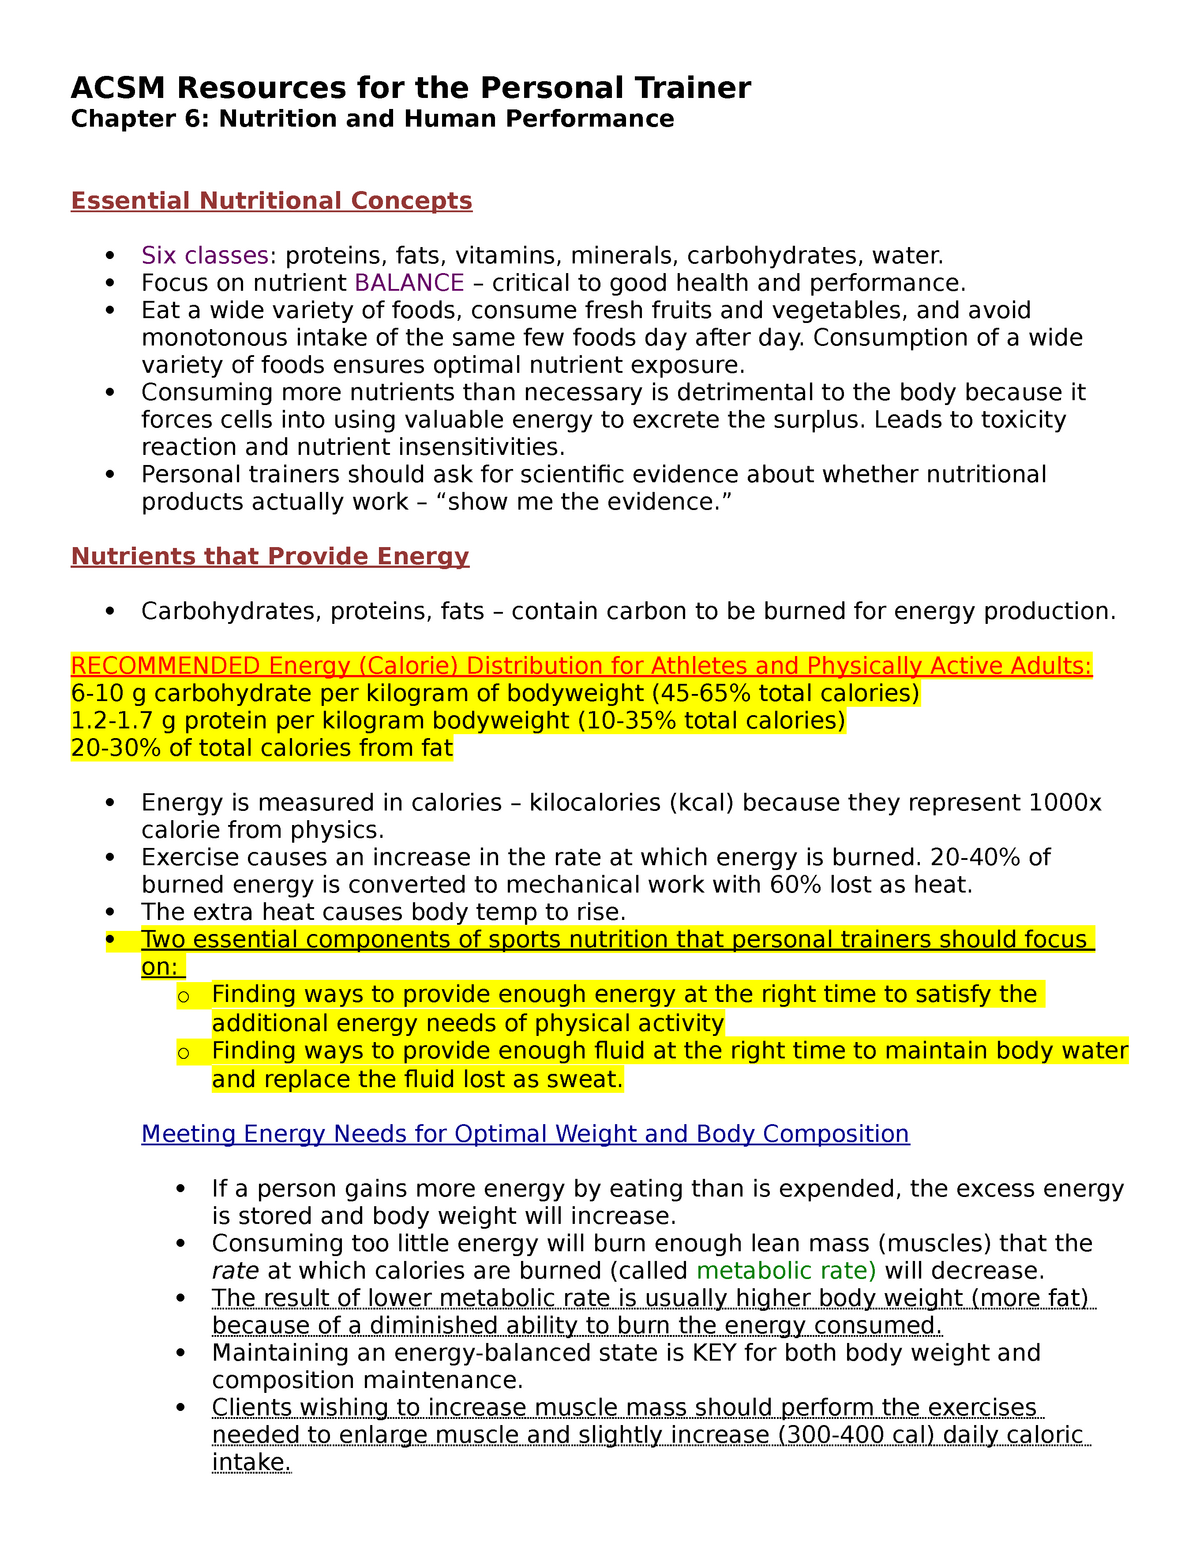 ACSM Chapter 6: Nutrition and Human Performance - ESS 469